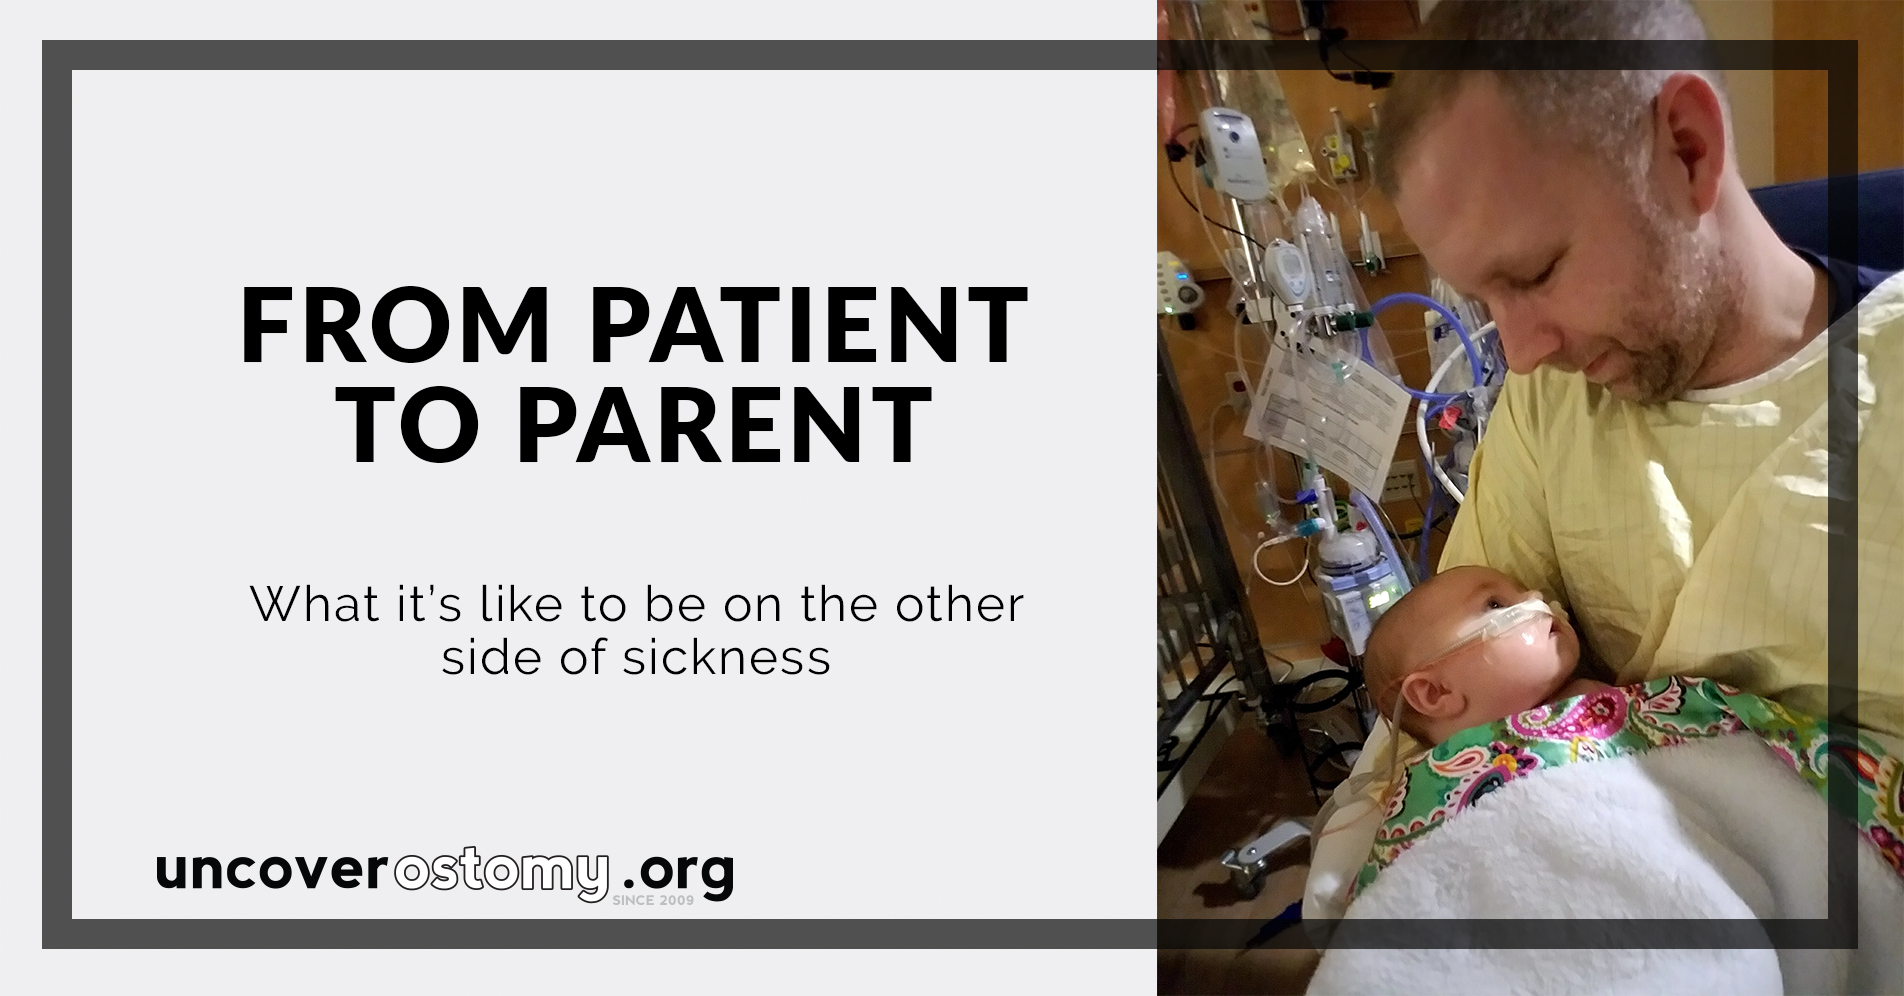 uncover-ostomy-from-patient-to-parent